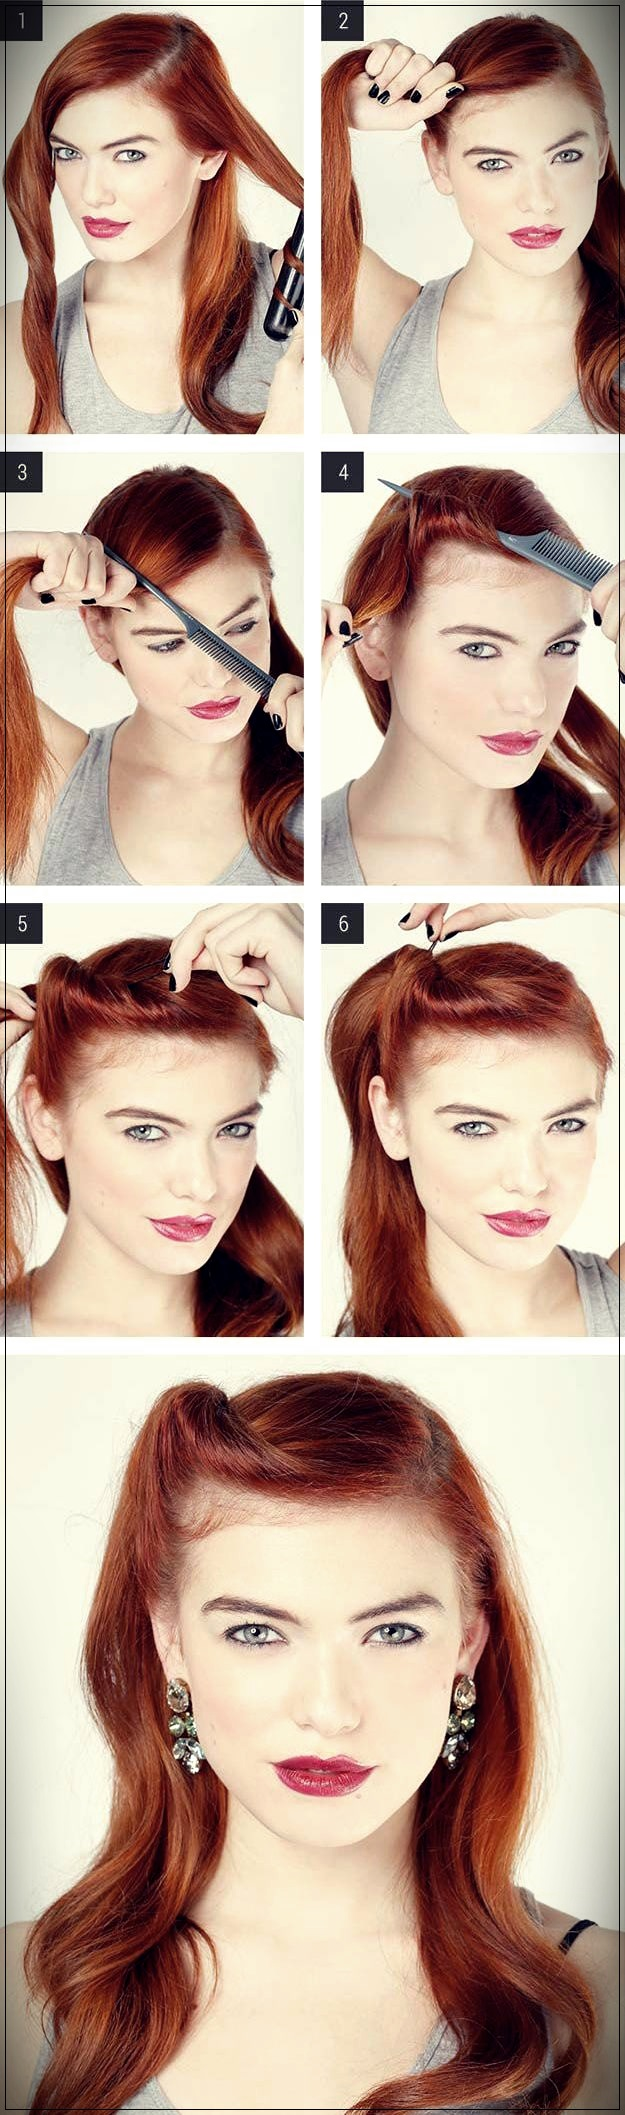 Easy Hairstyles 2019 step by step - easy hairstyles 2019 25